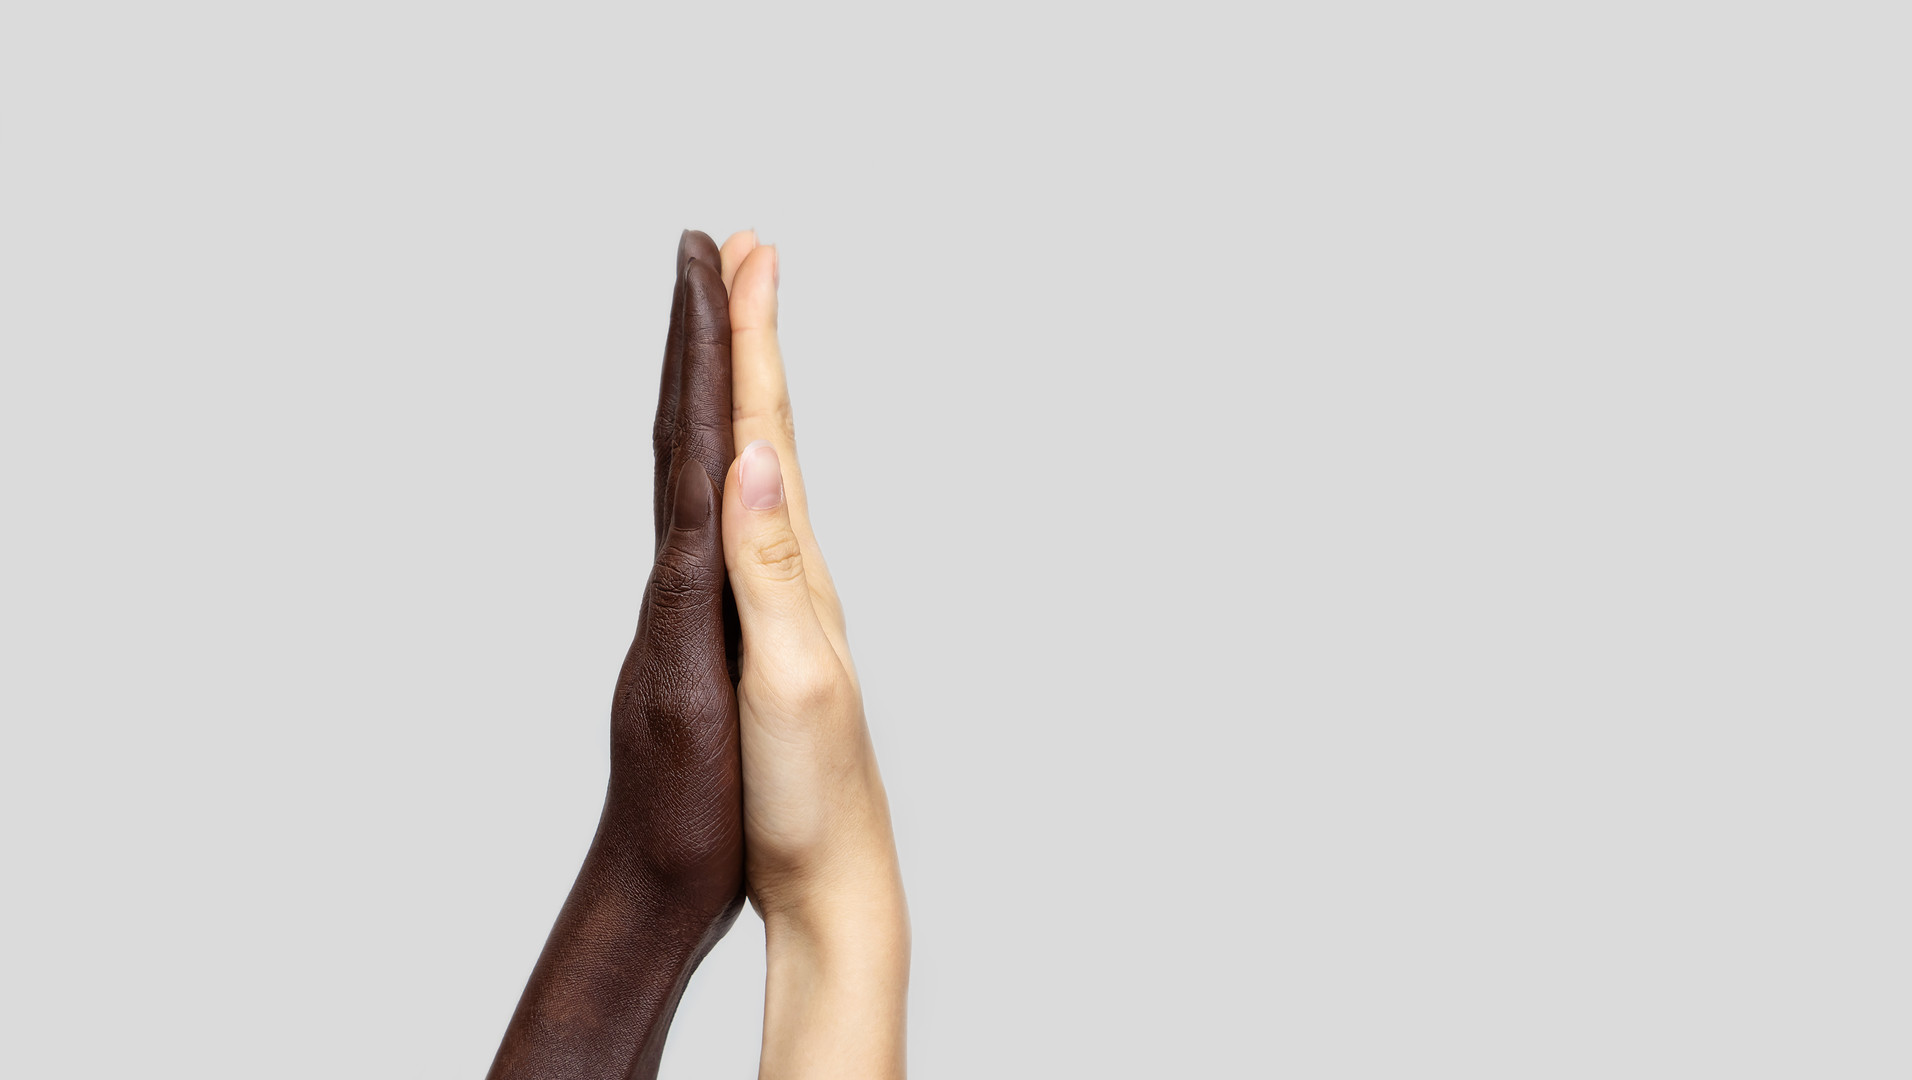 Black-and-white human hands touch palms